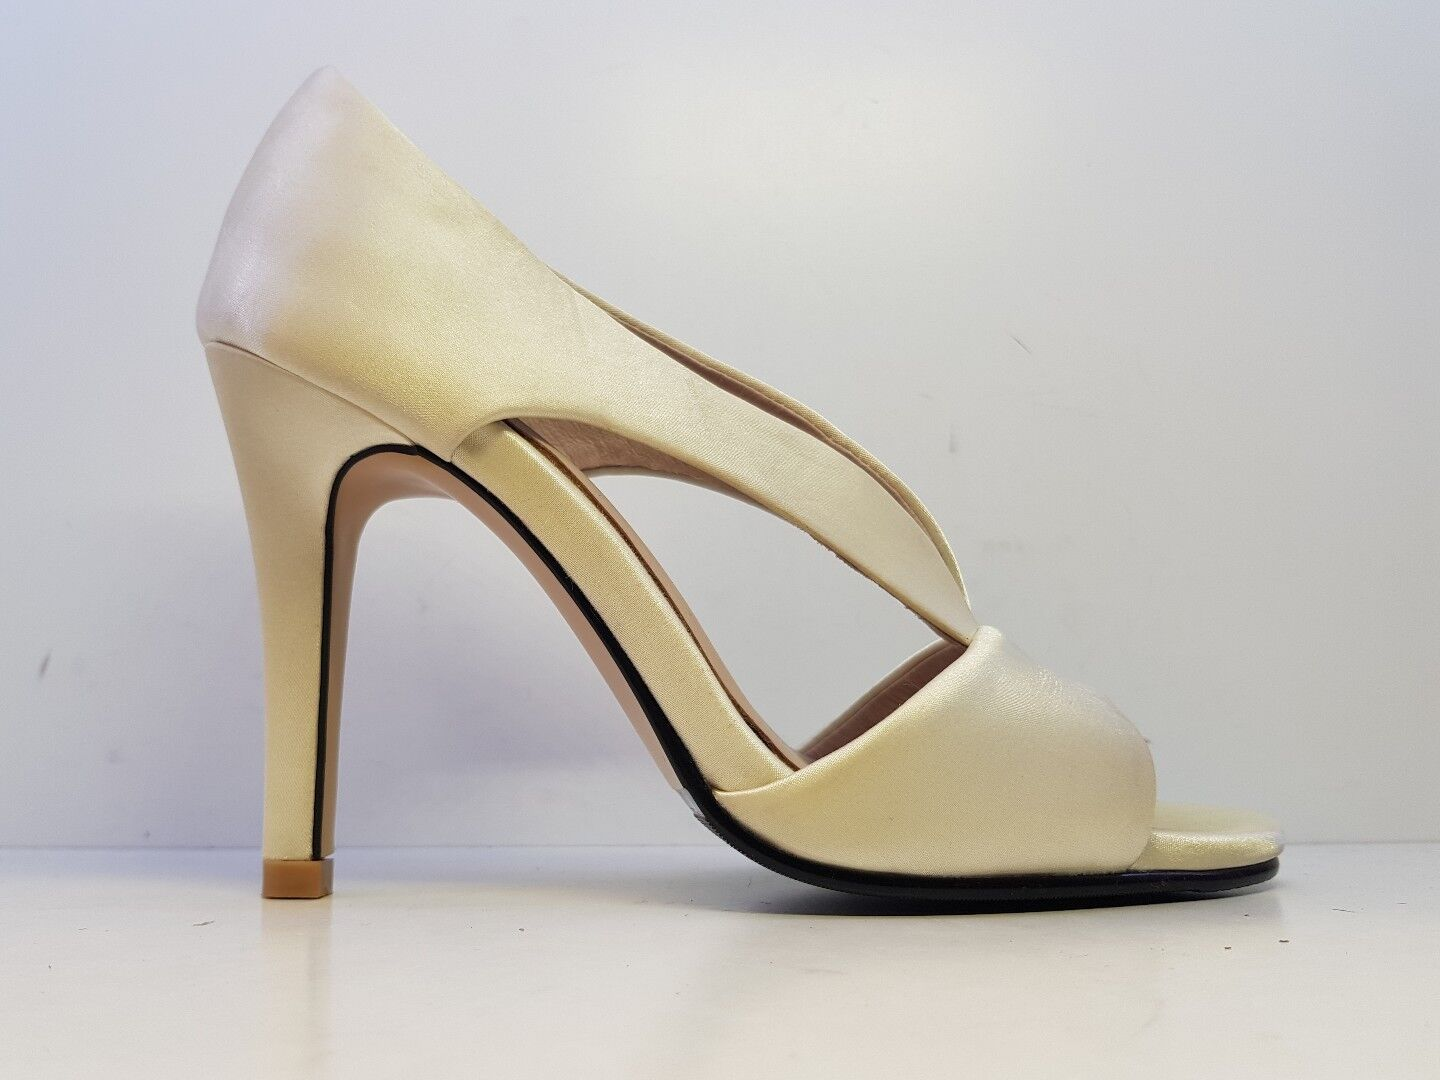 Solely Original Bespoke Satin Peep Toe Heels Cream SIZE UK 3